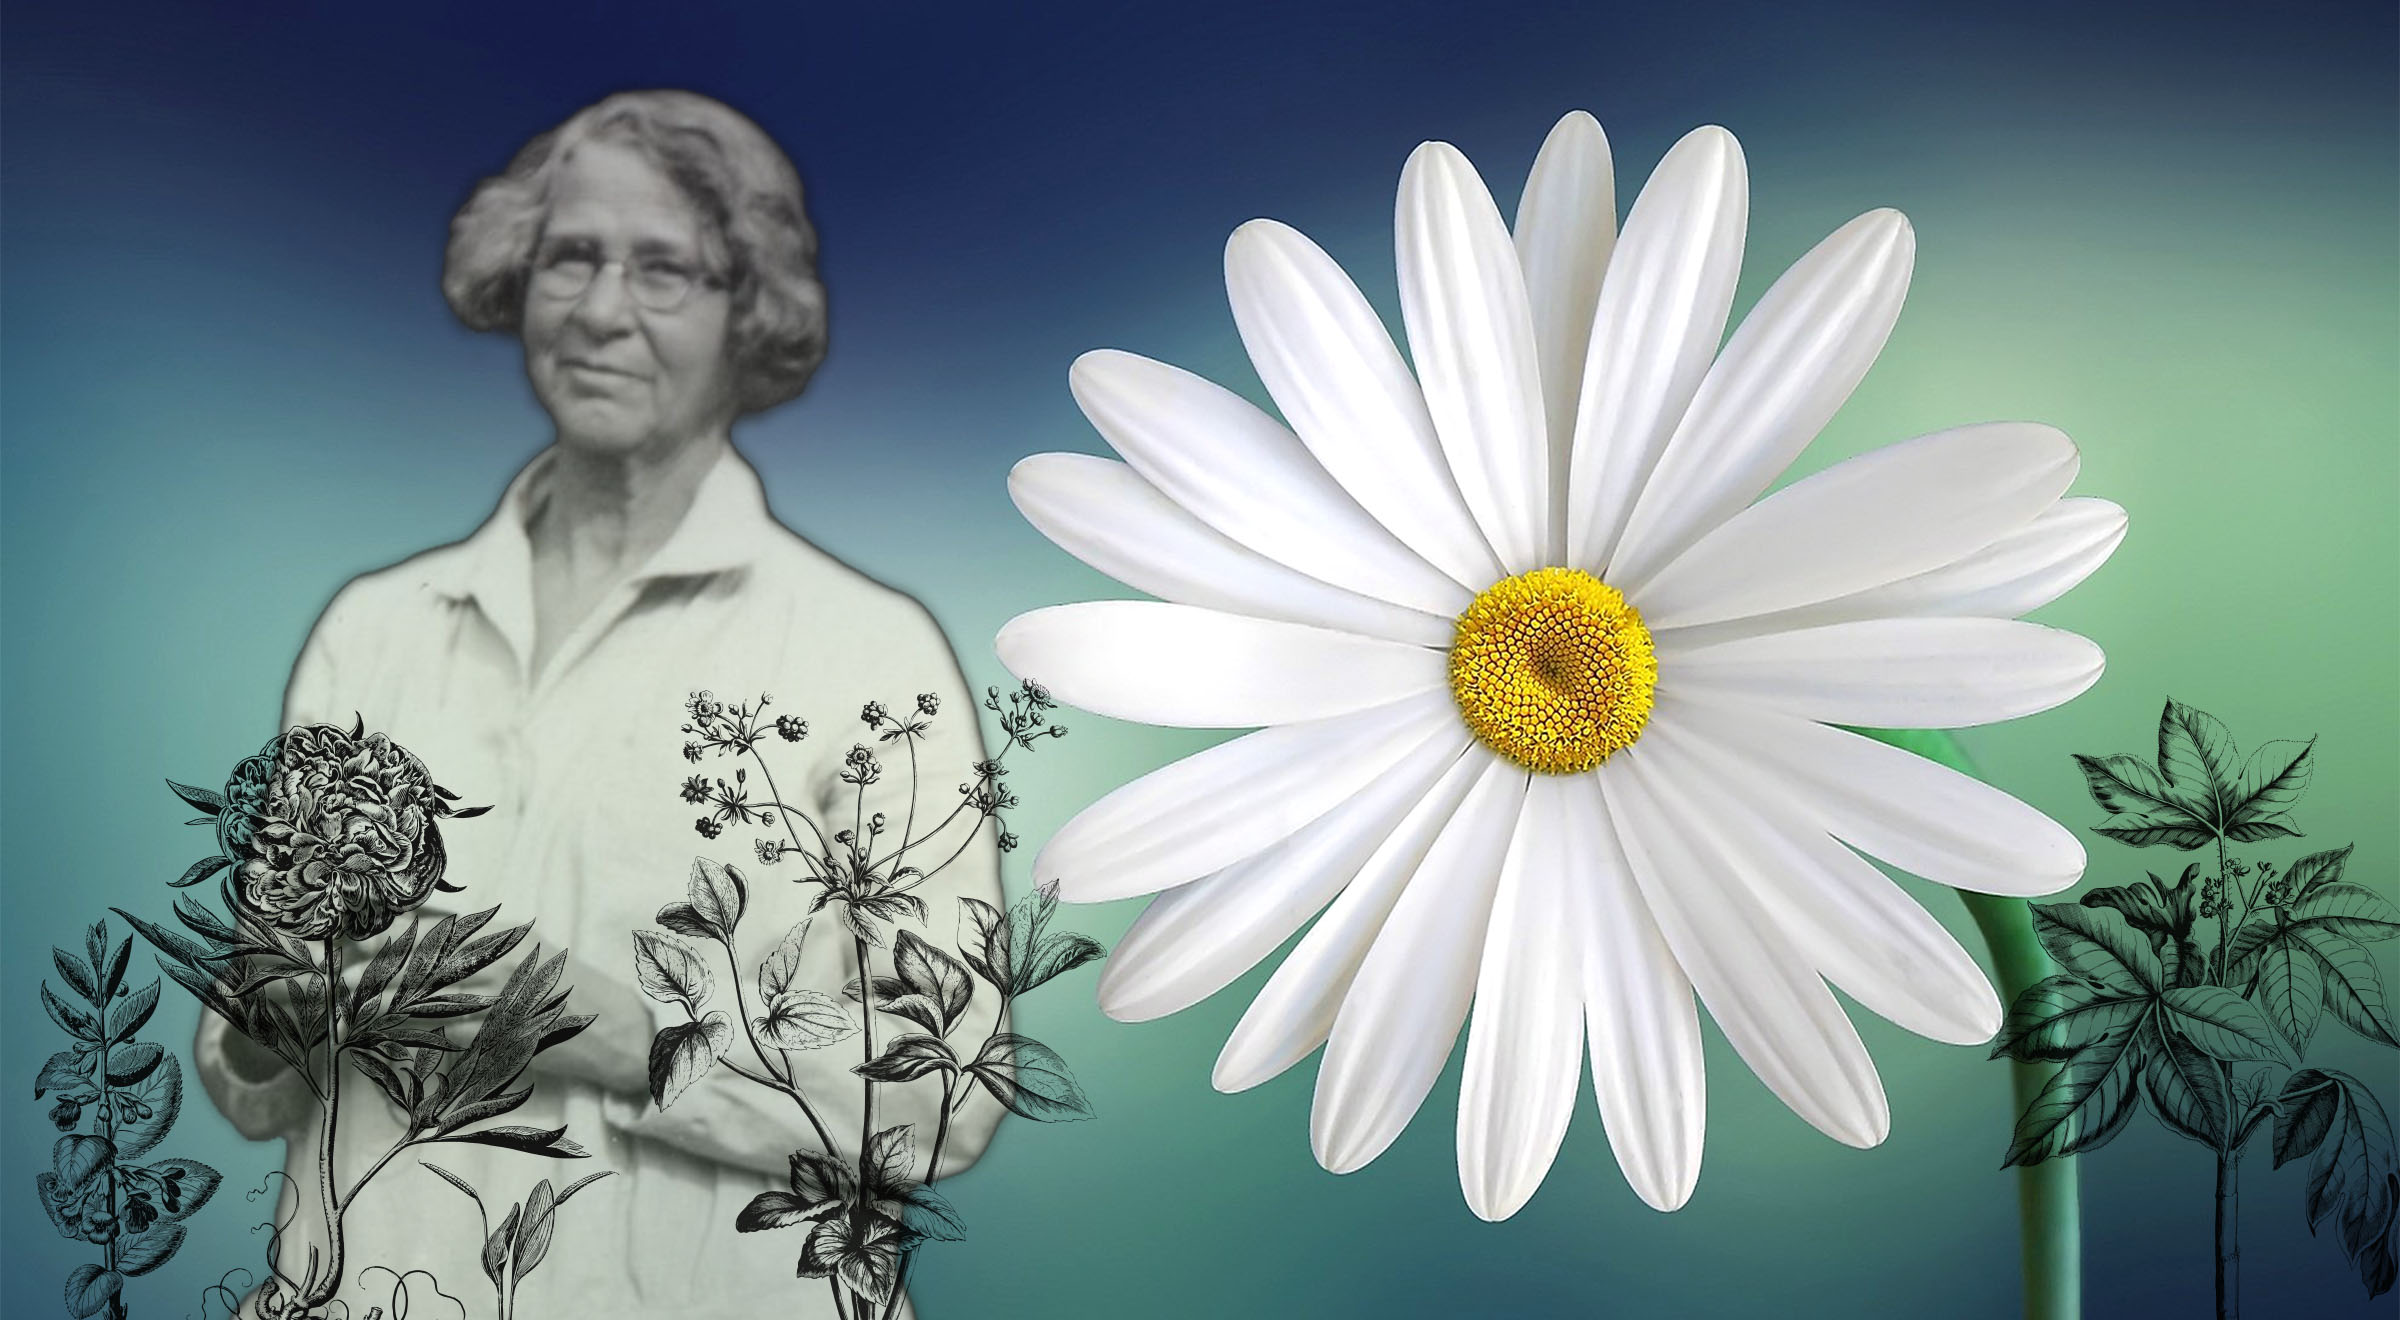 composite of image of Ynes Mexia and daisy flower